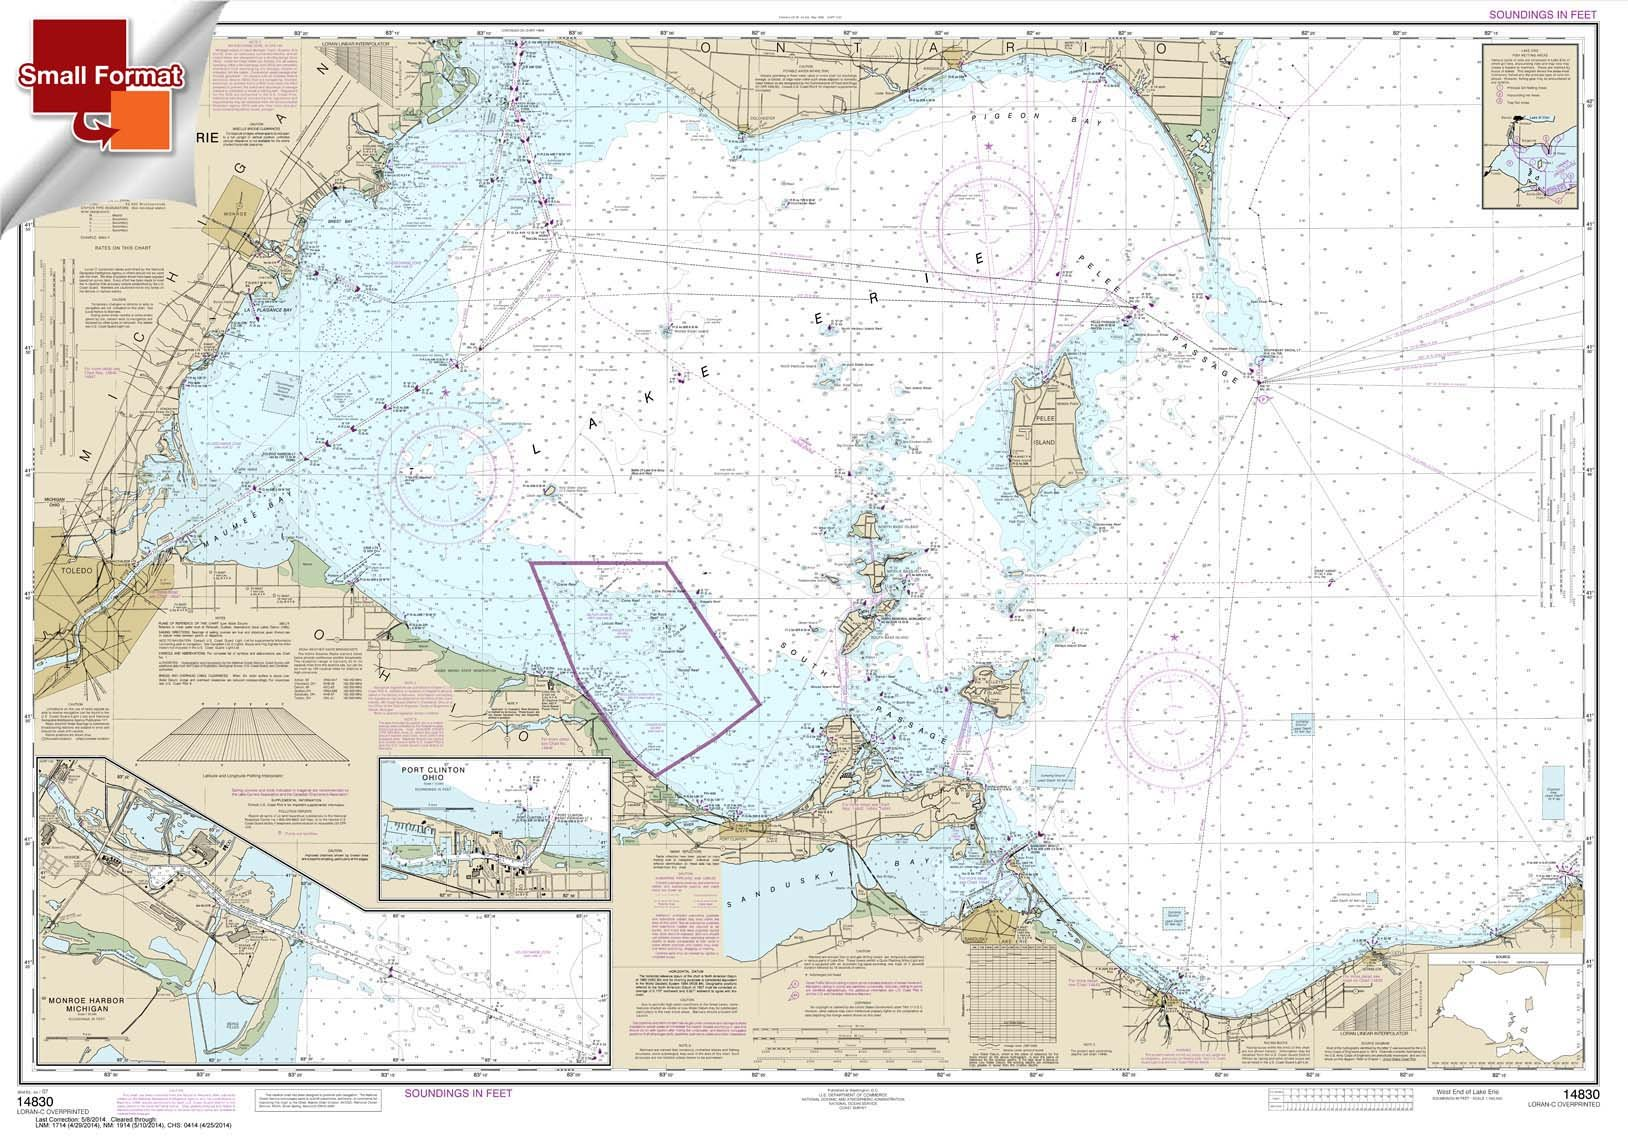 NOAA Chart 14830: West End of Lake Erie; Port Clinton Harbor 21.00 x 30.10 (SMALL FORMAT WATERPROOF)